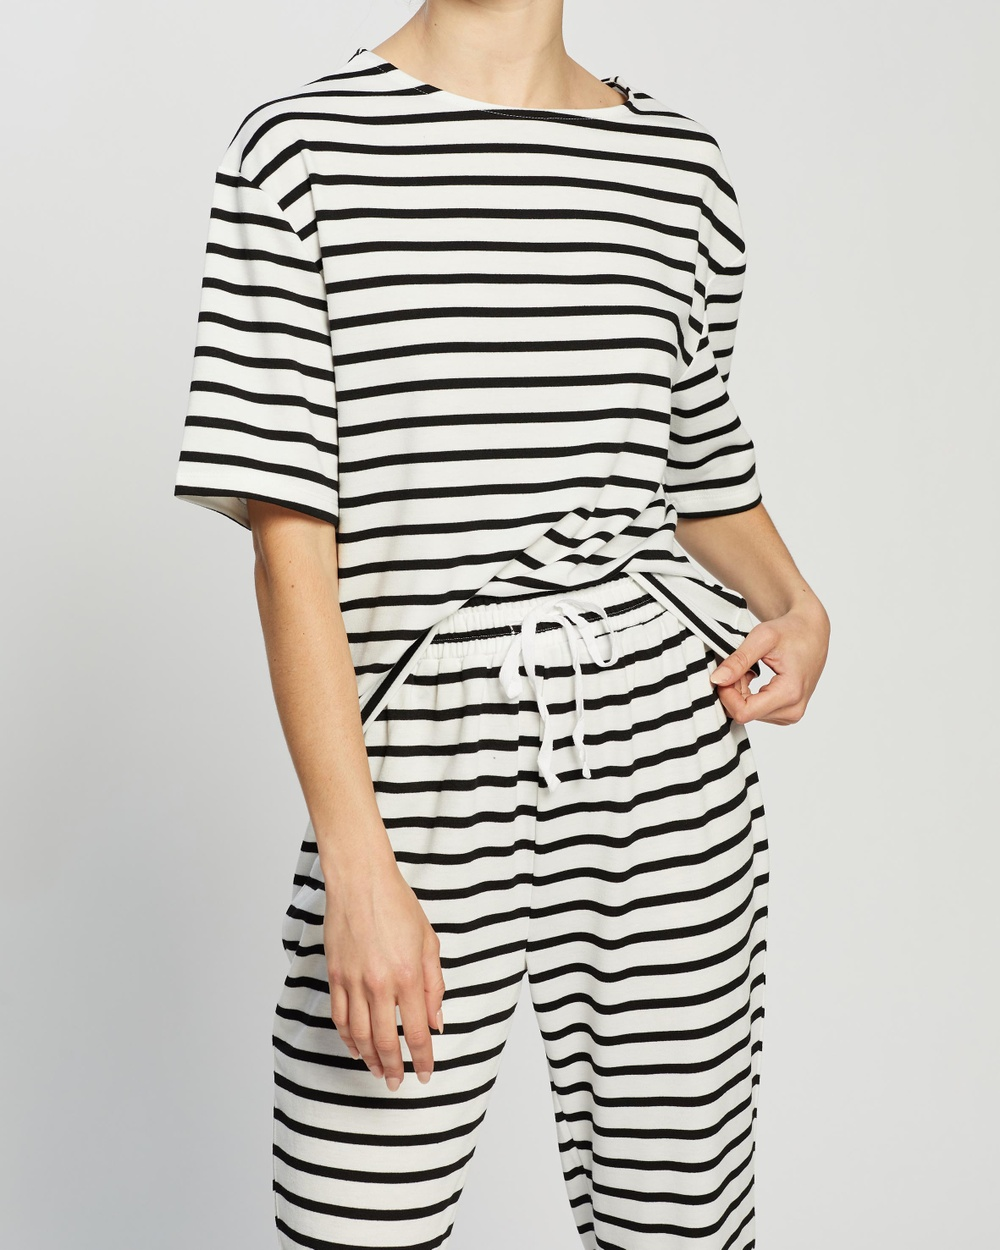 Atmos&Here - Nadia Relaxed Tee - T-Shirts & Singlets (Black & White Stripe) Nadia Relaxed Tee